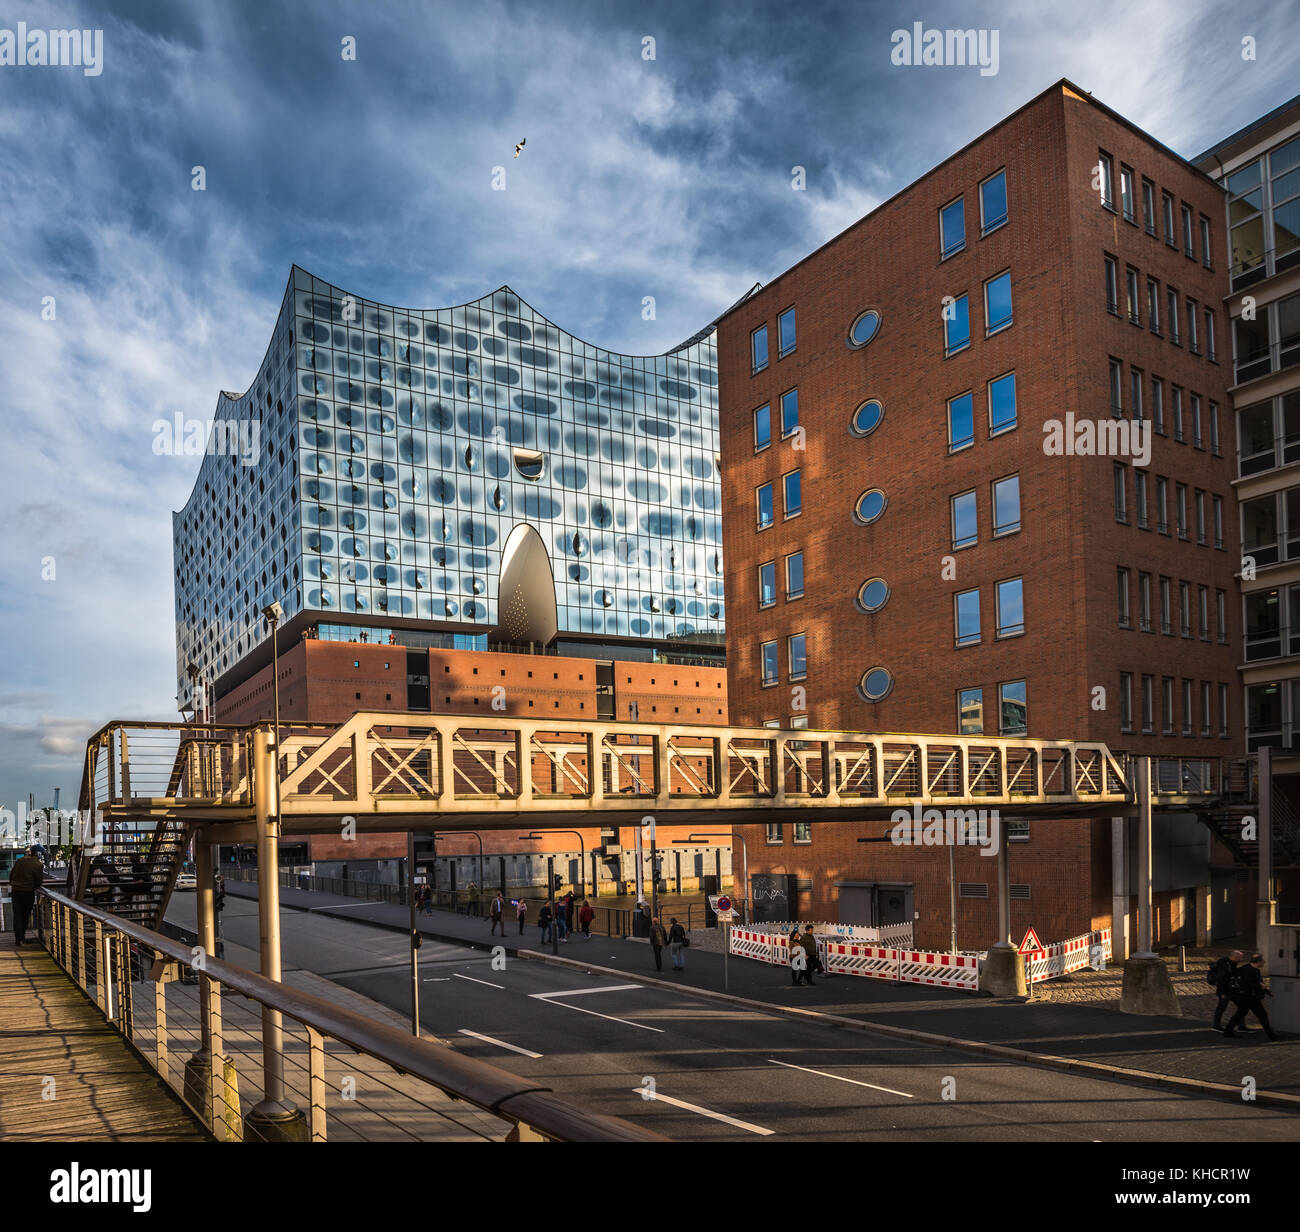 The Elbe Philharmonic Hall or Elbphilharmonie, concert hall in the Hafen City quarter of Hamburg, Germany - Stock Image